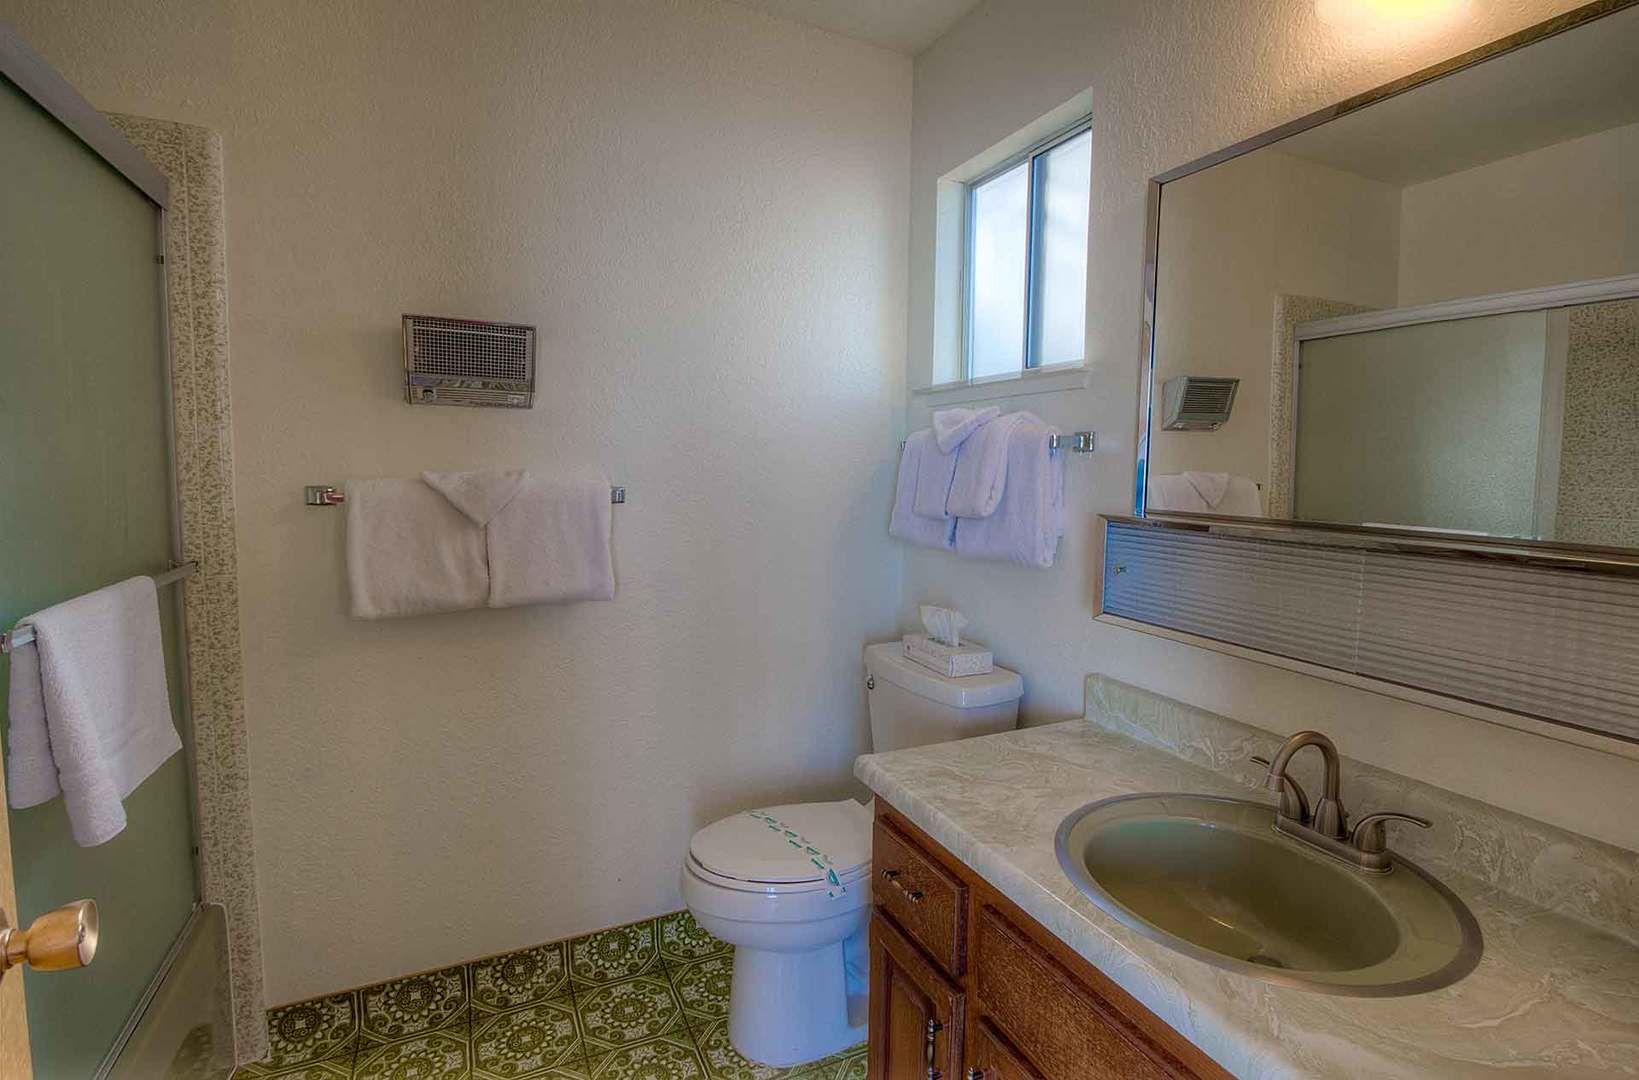 cyh1279 bathroom